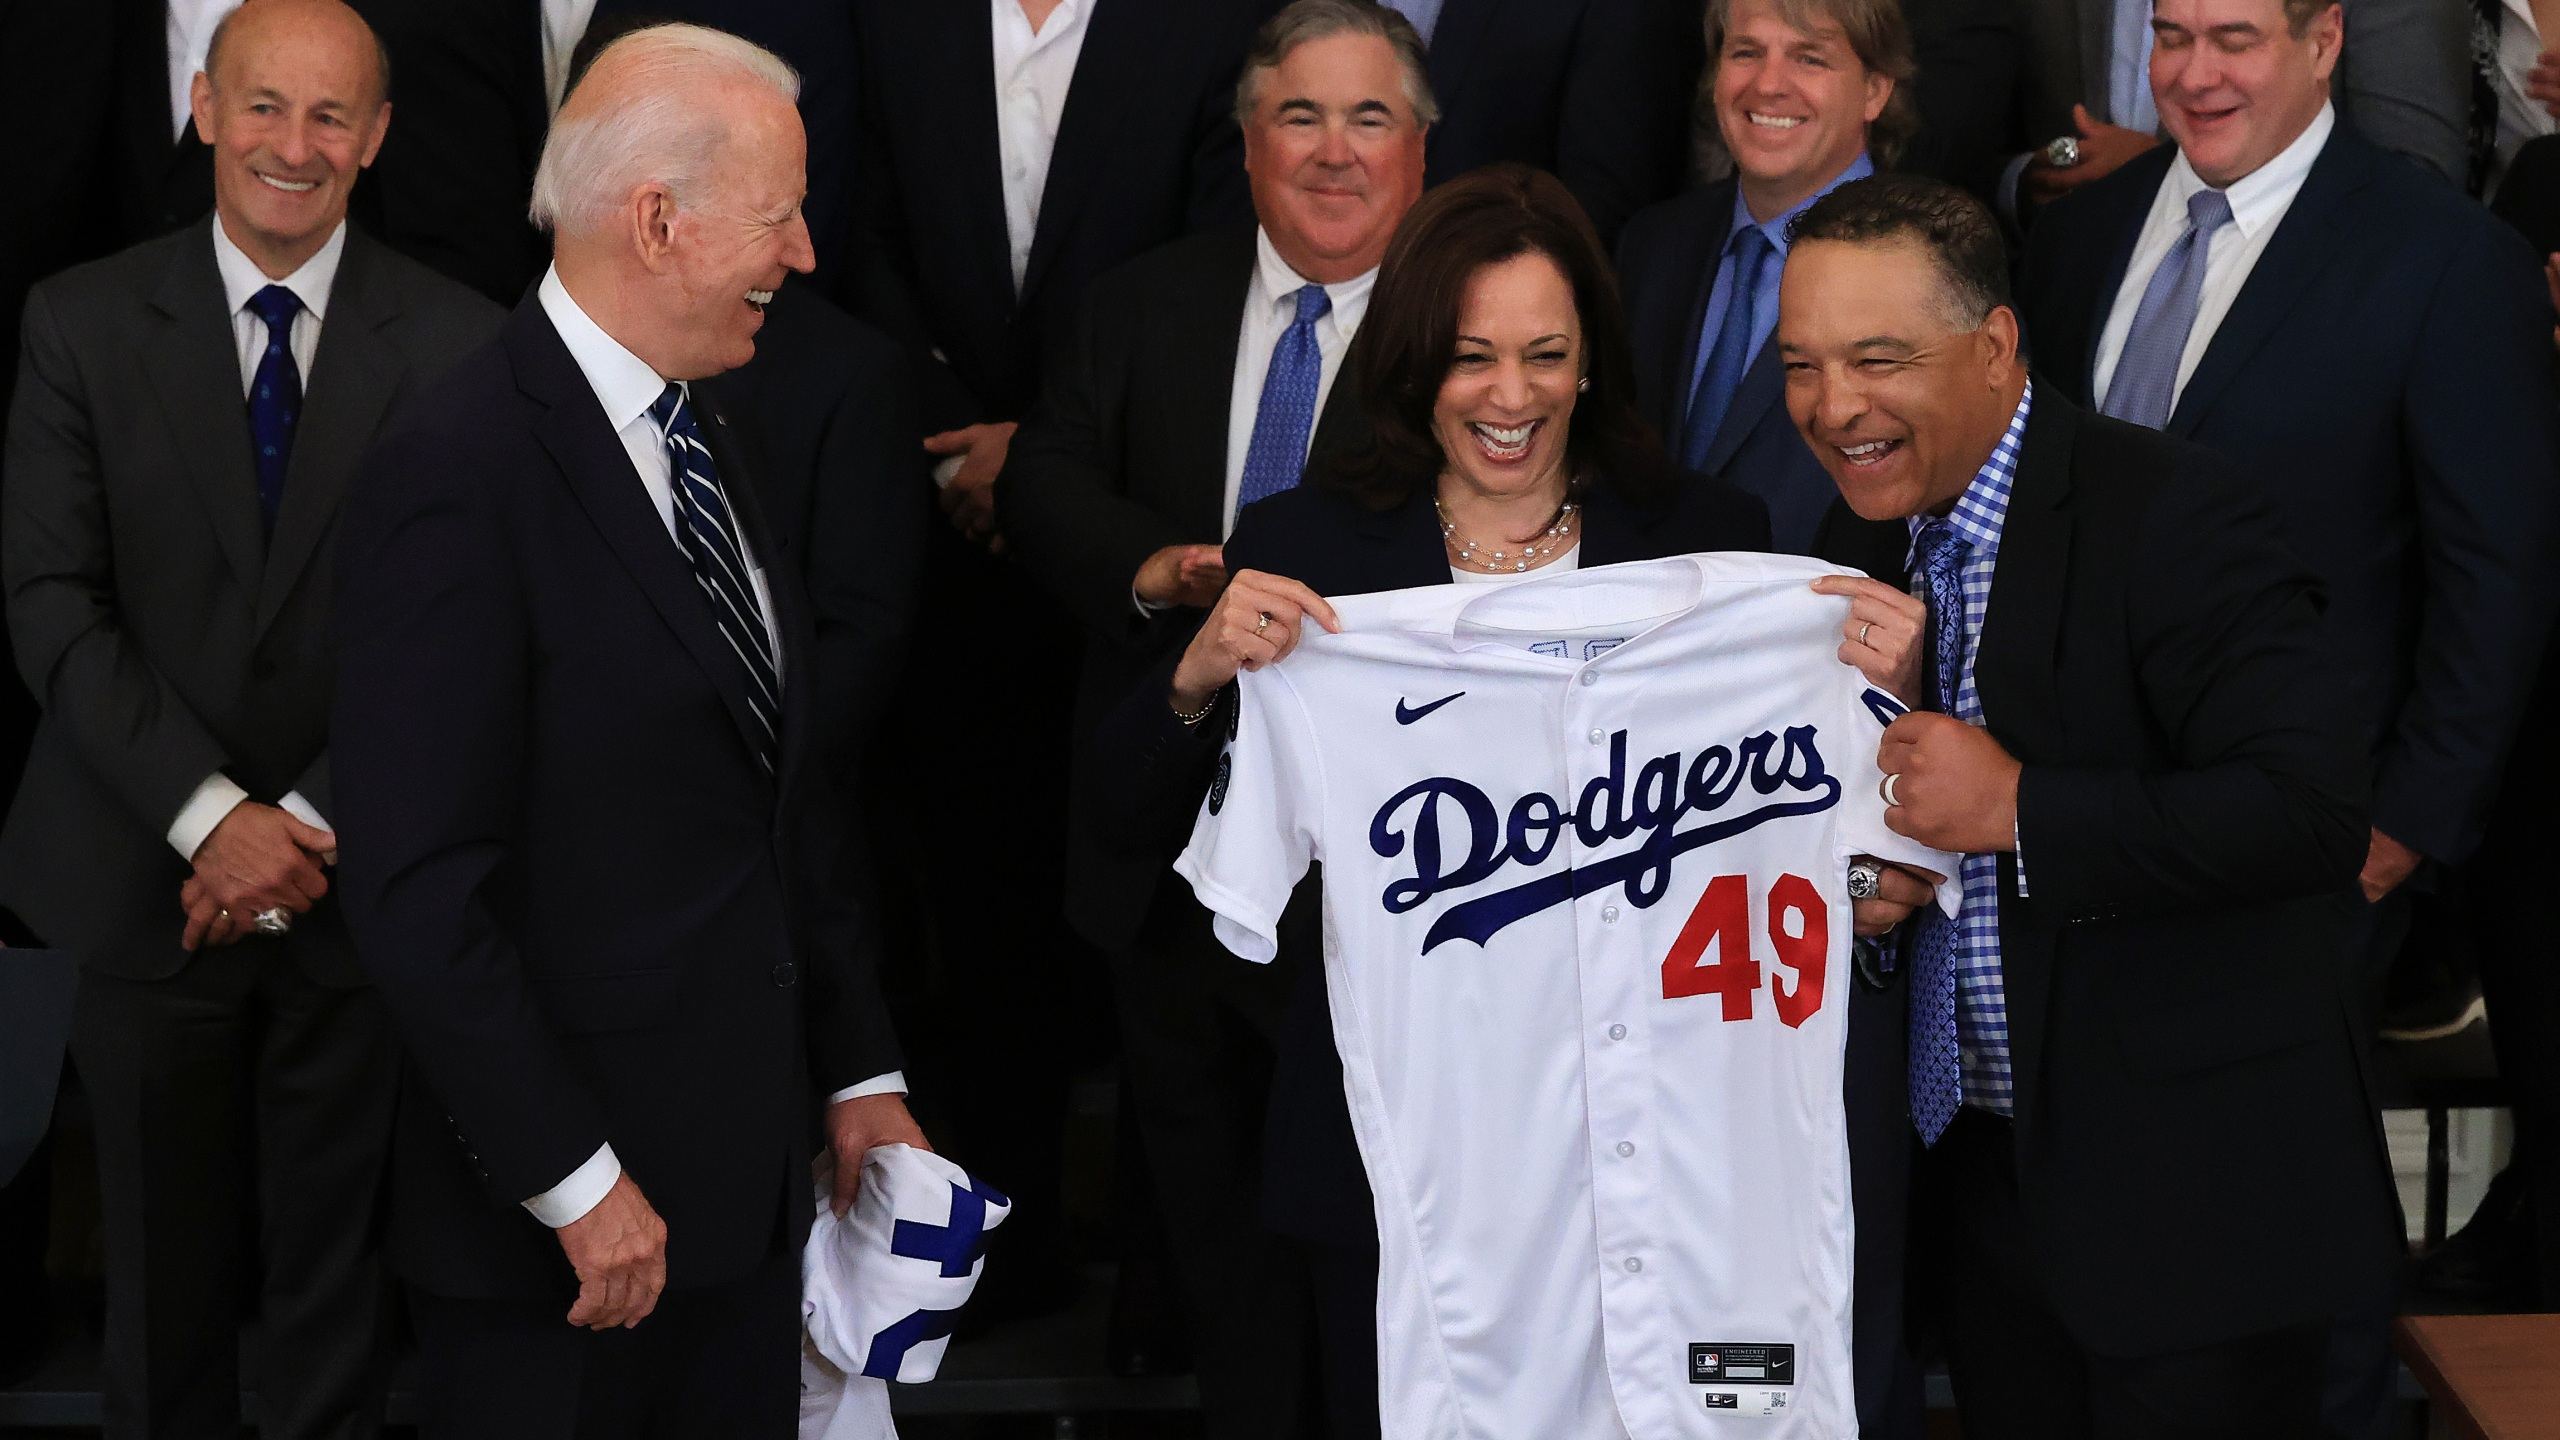 Vice President Kamala Harris, seen here being presented with a Dodgers jersey earlier this year during a team visit to the White House, will be rooting for the San Francisco Giants in the playoffs. (Chip Somodevilla / Getty Images)